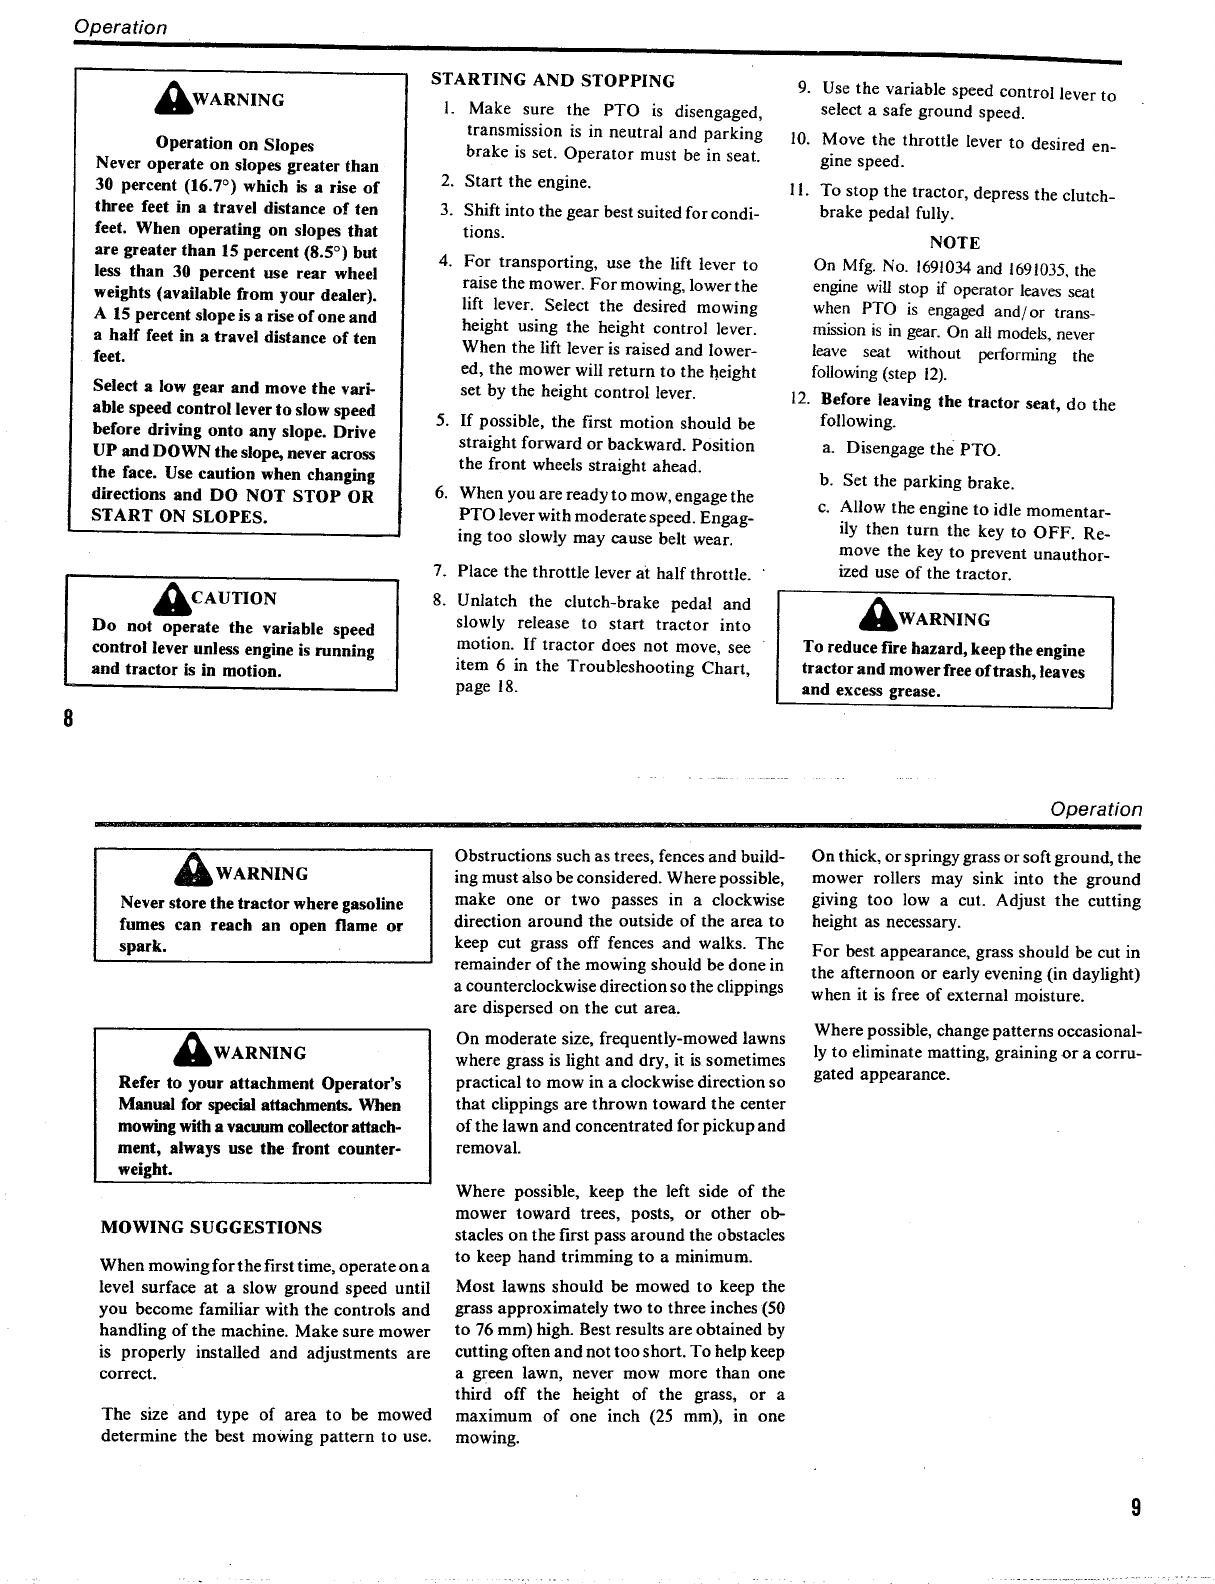 Page 6 of Simplicity Lawn Mower 6216 User Guide